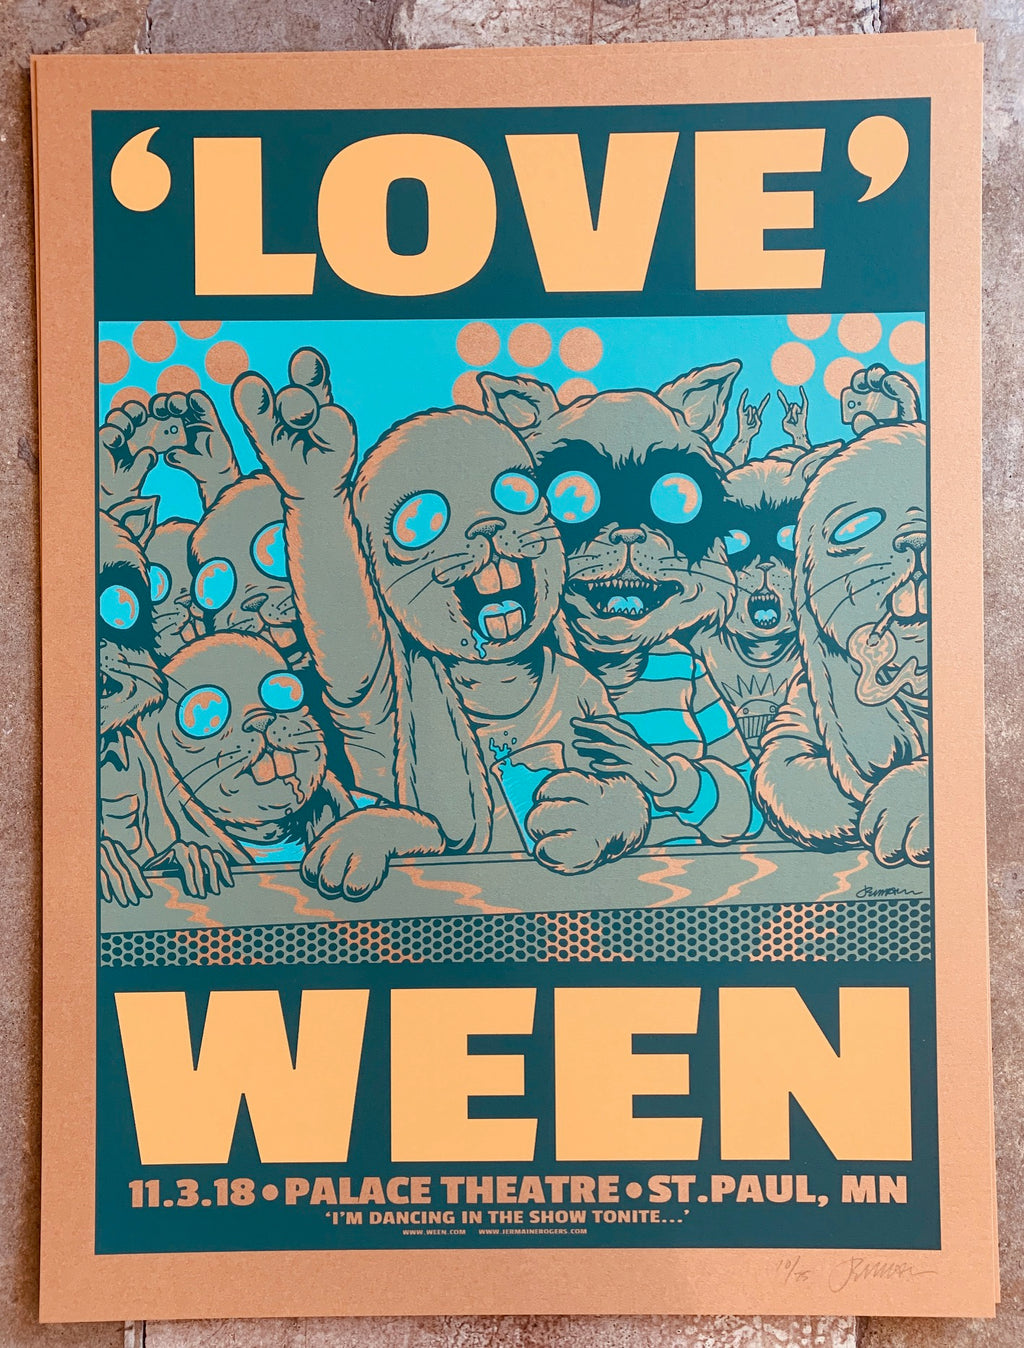 WEEN St. Paul 11.03.18 dancing 10/25